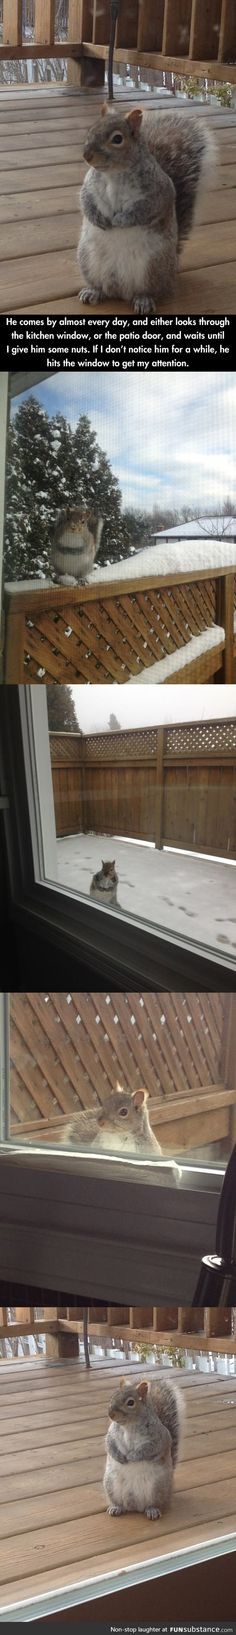 Squirrel who comes every day for nuts